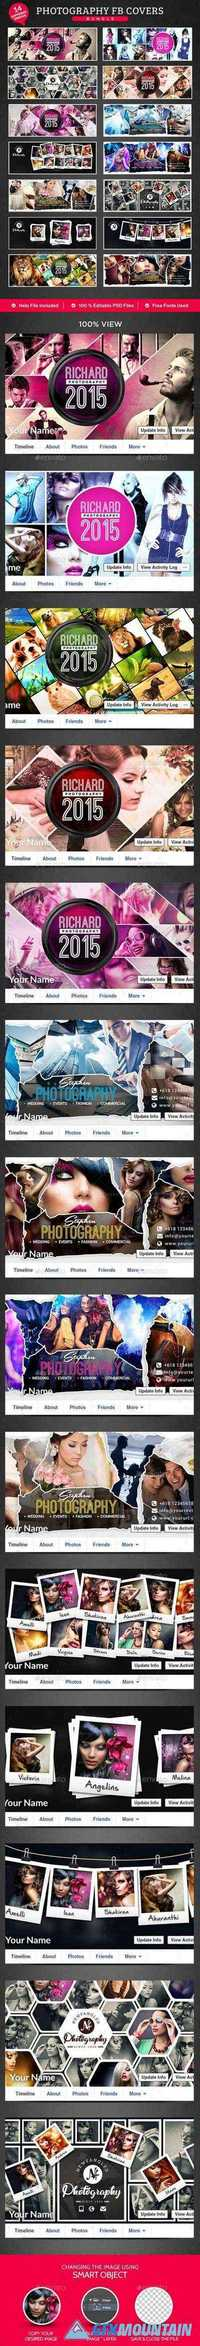 Graphicriver Photography Facebook Cover Bundle - 14 Designs 13139472